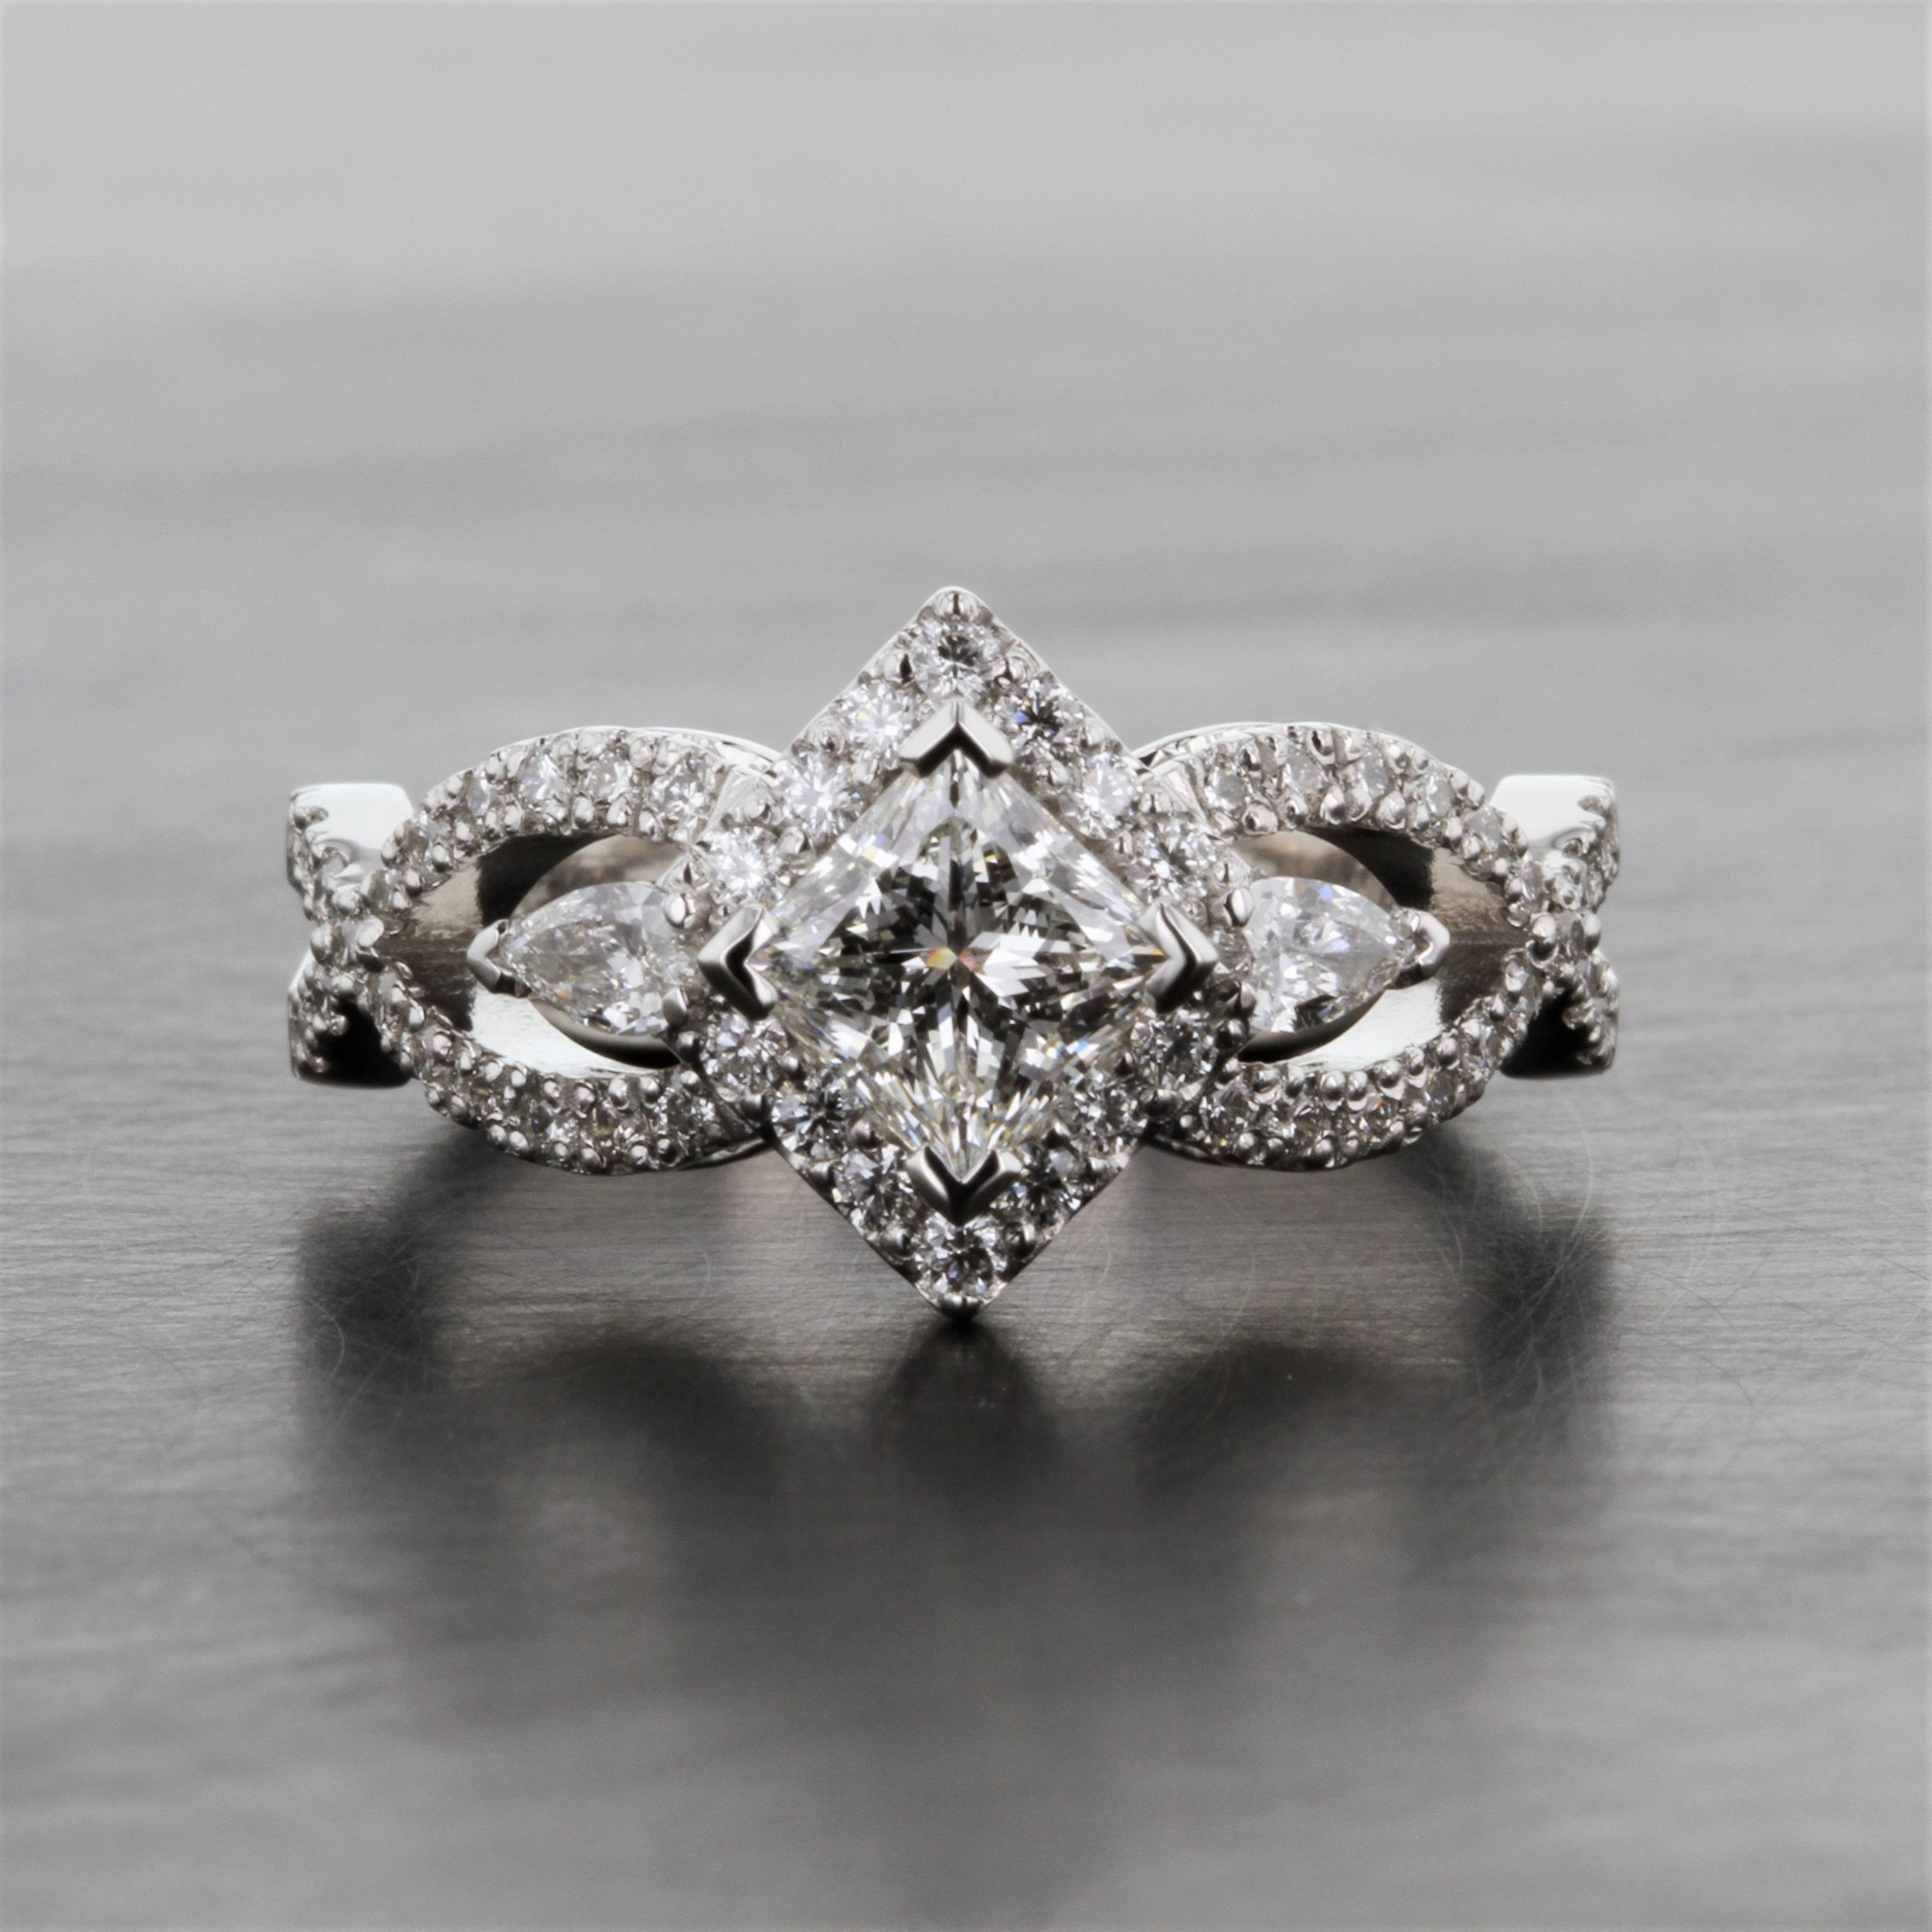 princess-cut-twist-band-pear-diamond-accent-halo-custom-wide-band-engagement-ring.jpg